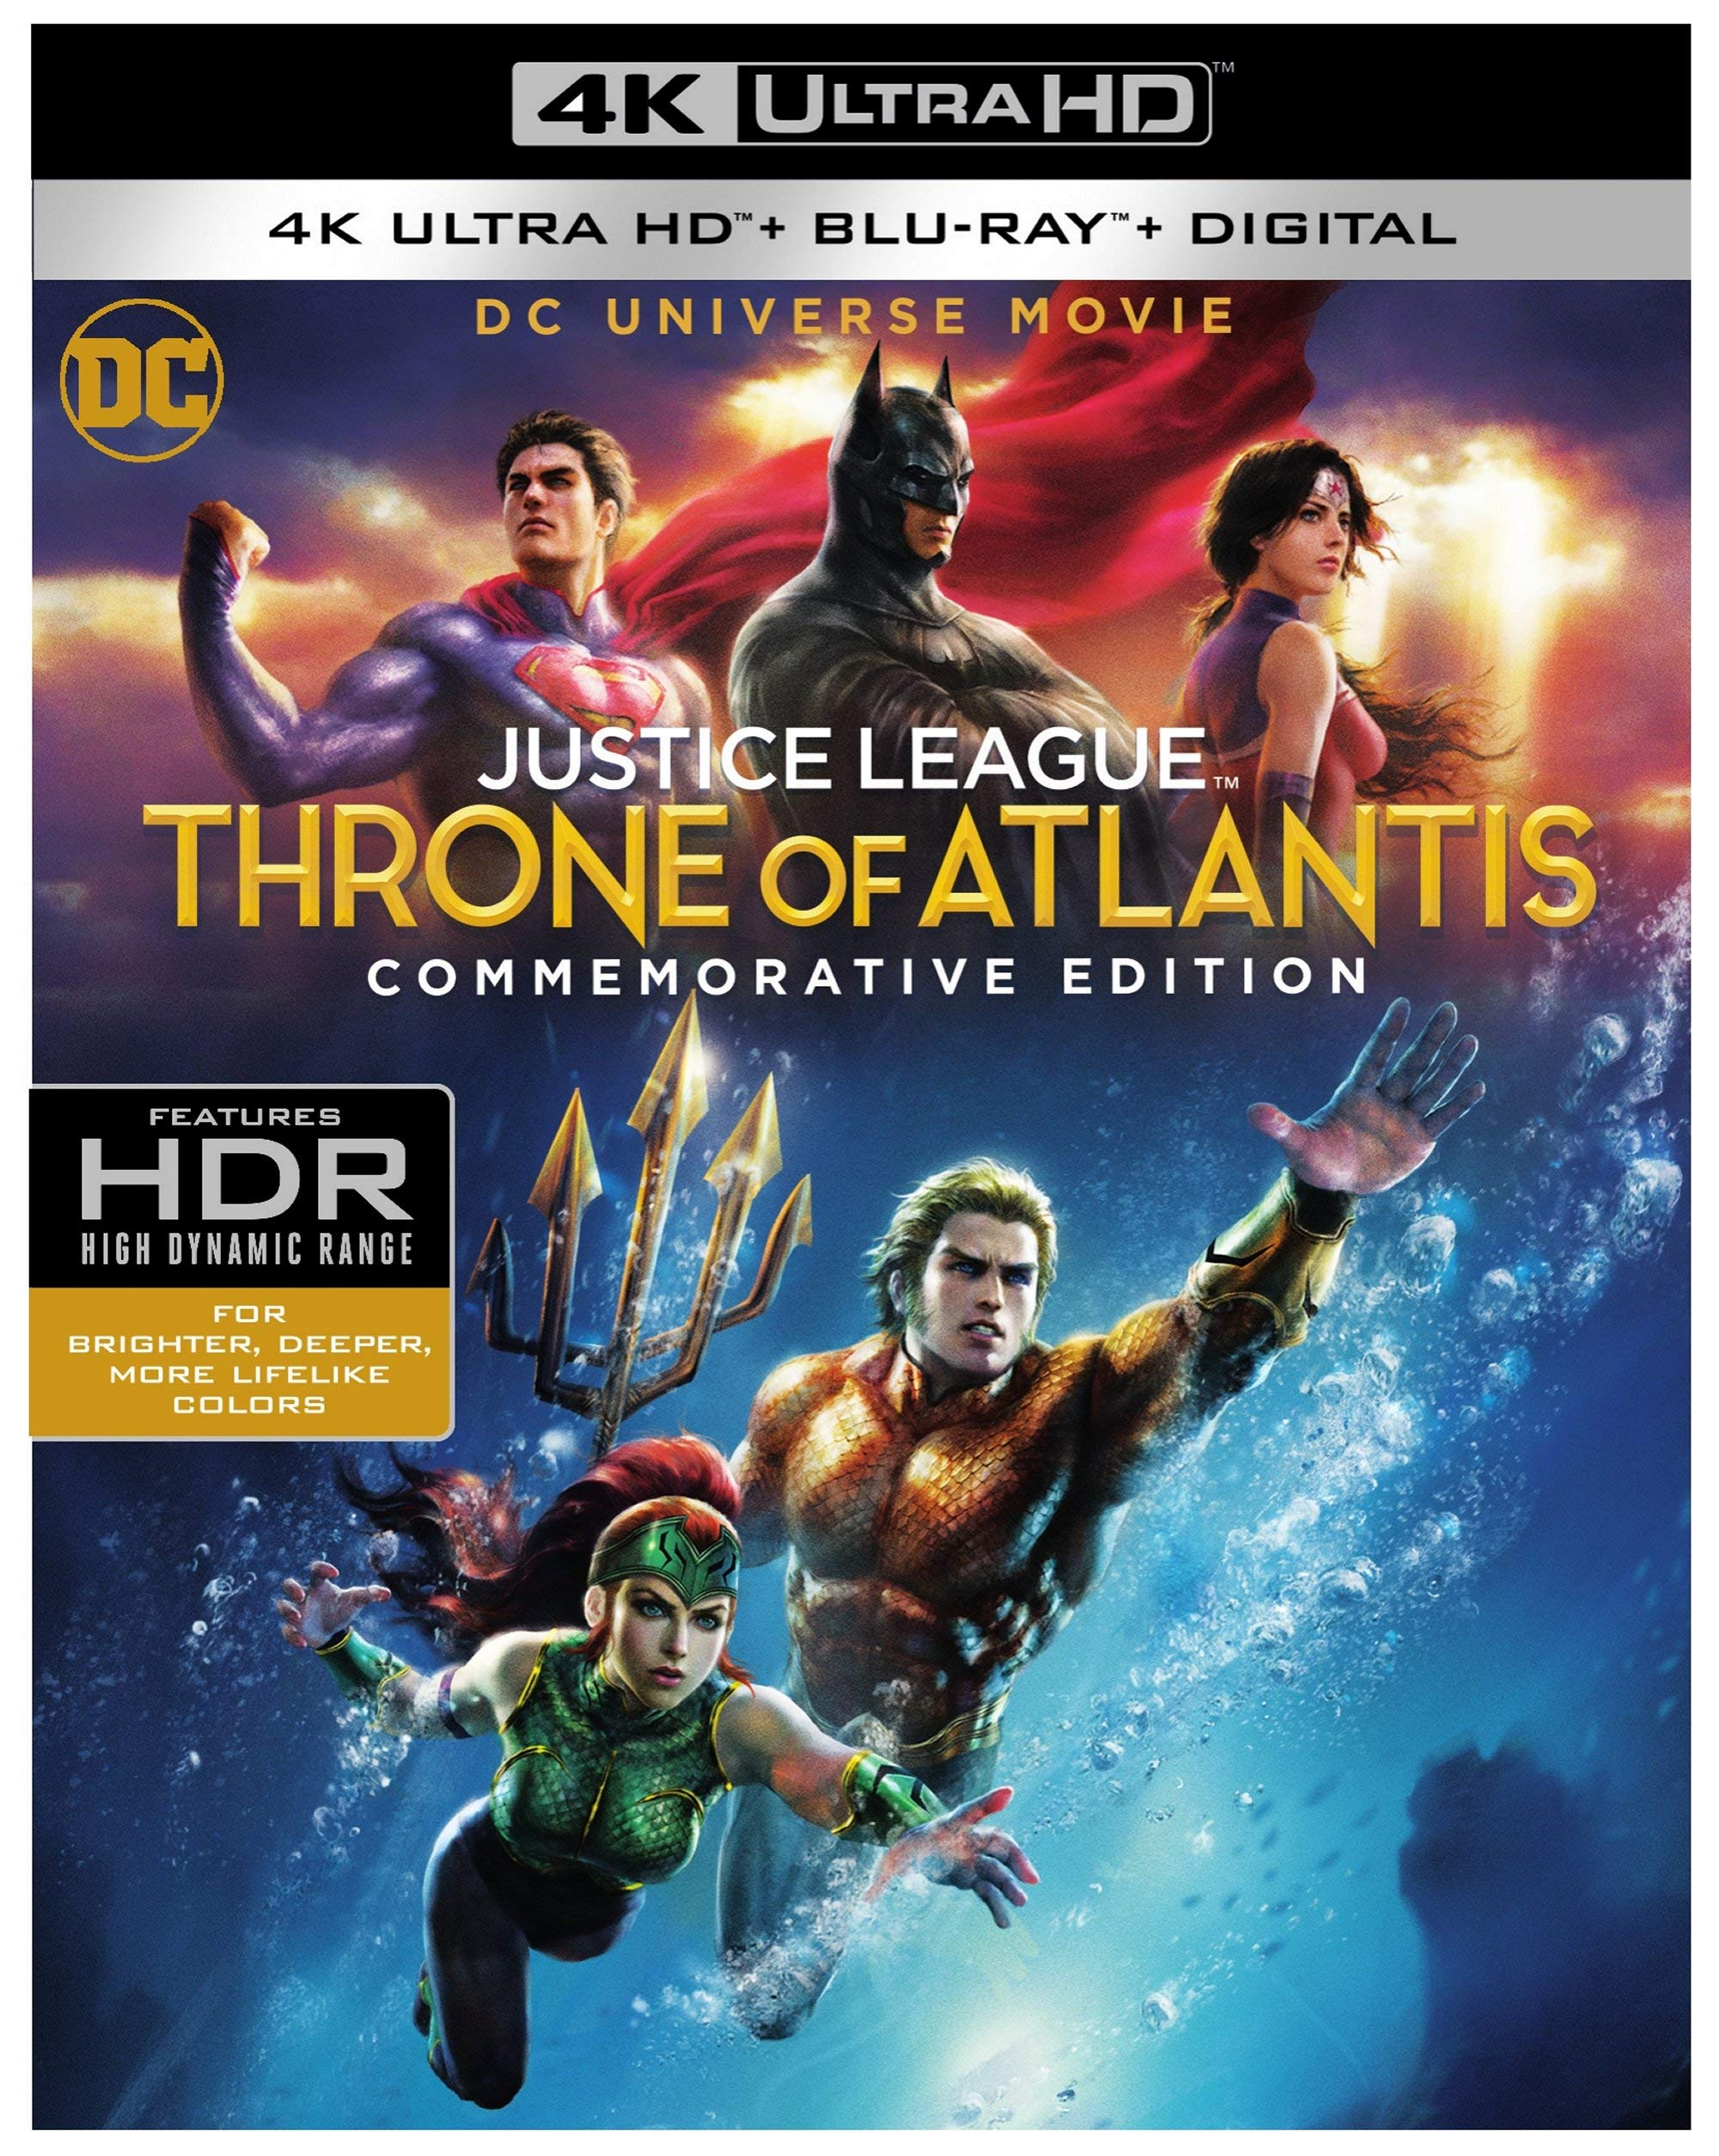 4K Blu-ray : Justice League: Throne Of Atlantis (commemorative Edition) (dcu) (With Blu-ray, 4K Mastering, Digital Copy, Dolby)